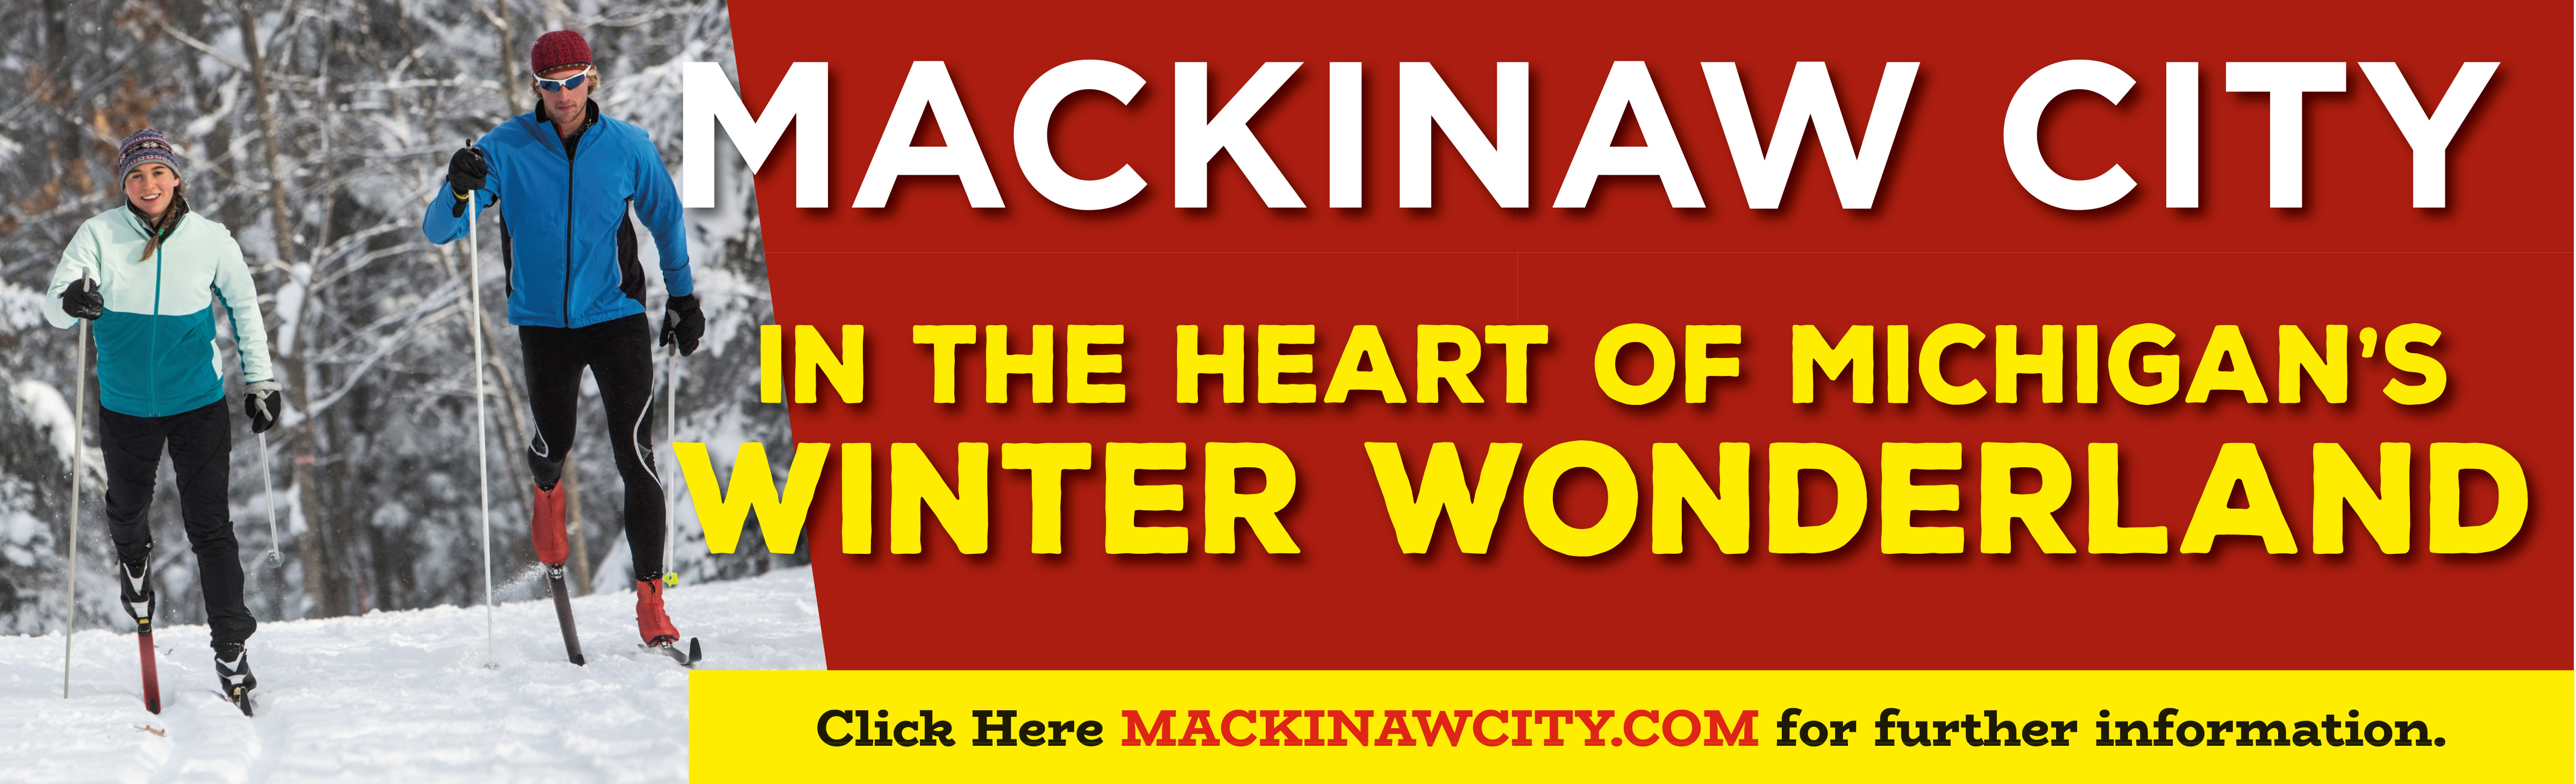 Mackinaw banner Winter